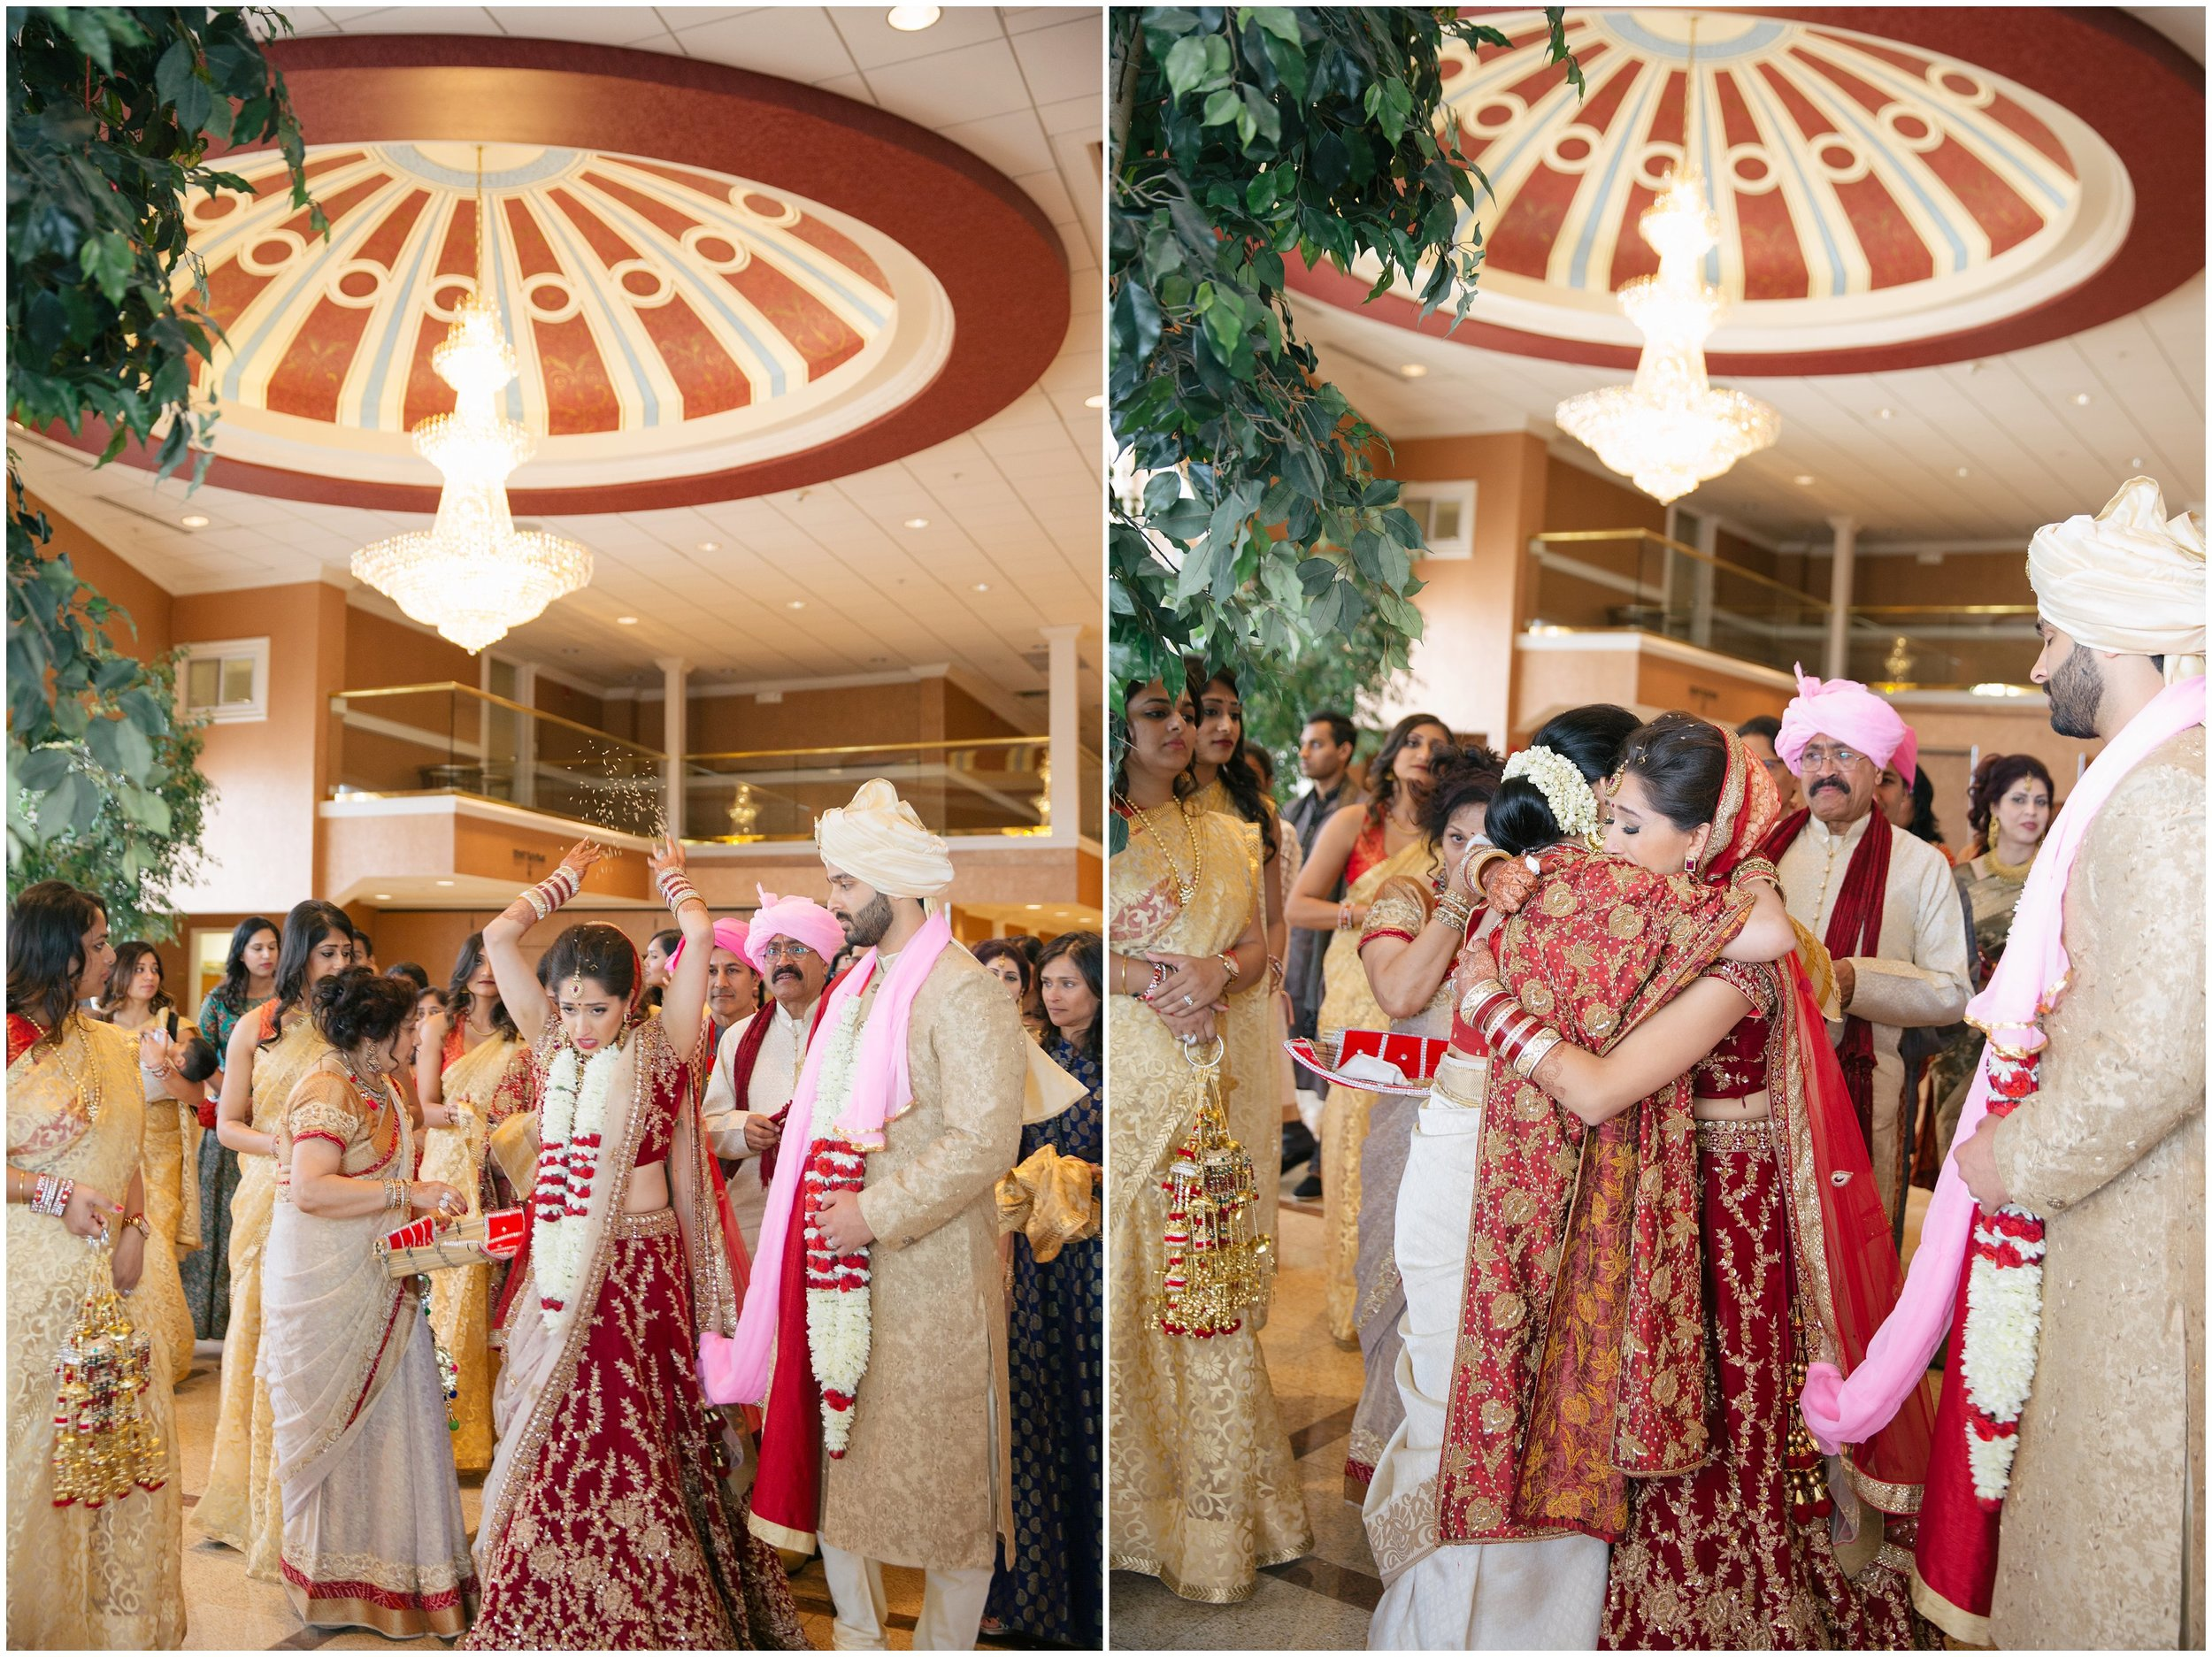 Le Cape Weddings - South Asian Wedding in Illinois - Tanvi and Anshul -9884_LuxuryDestinationPhotographer.jpg